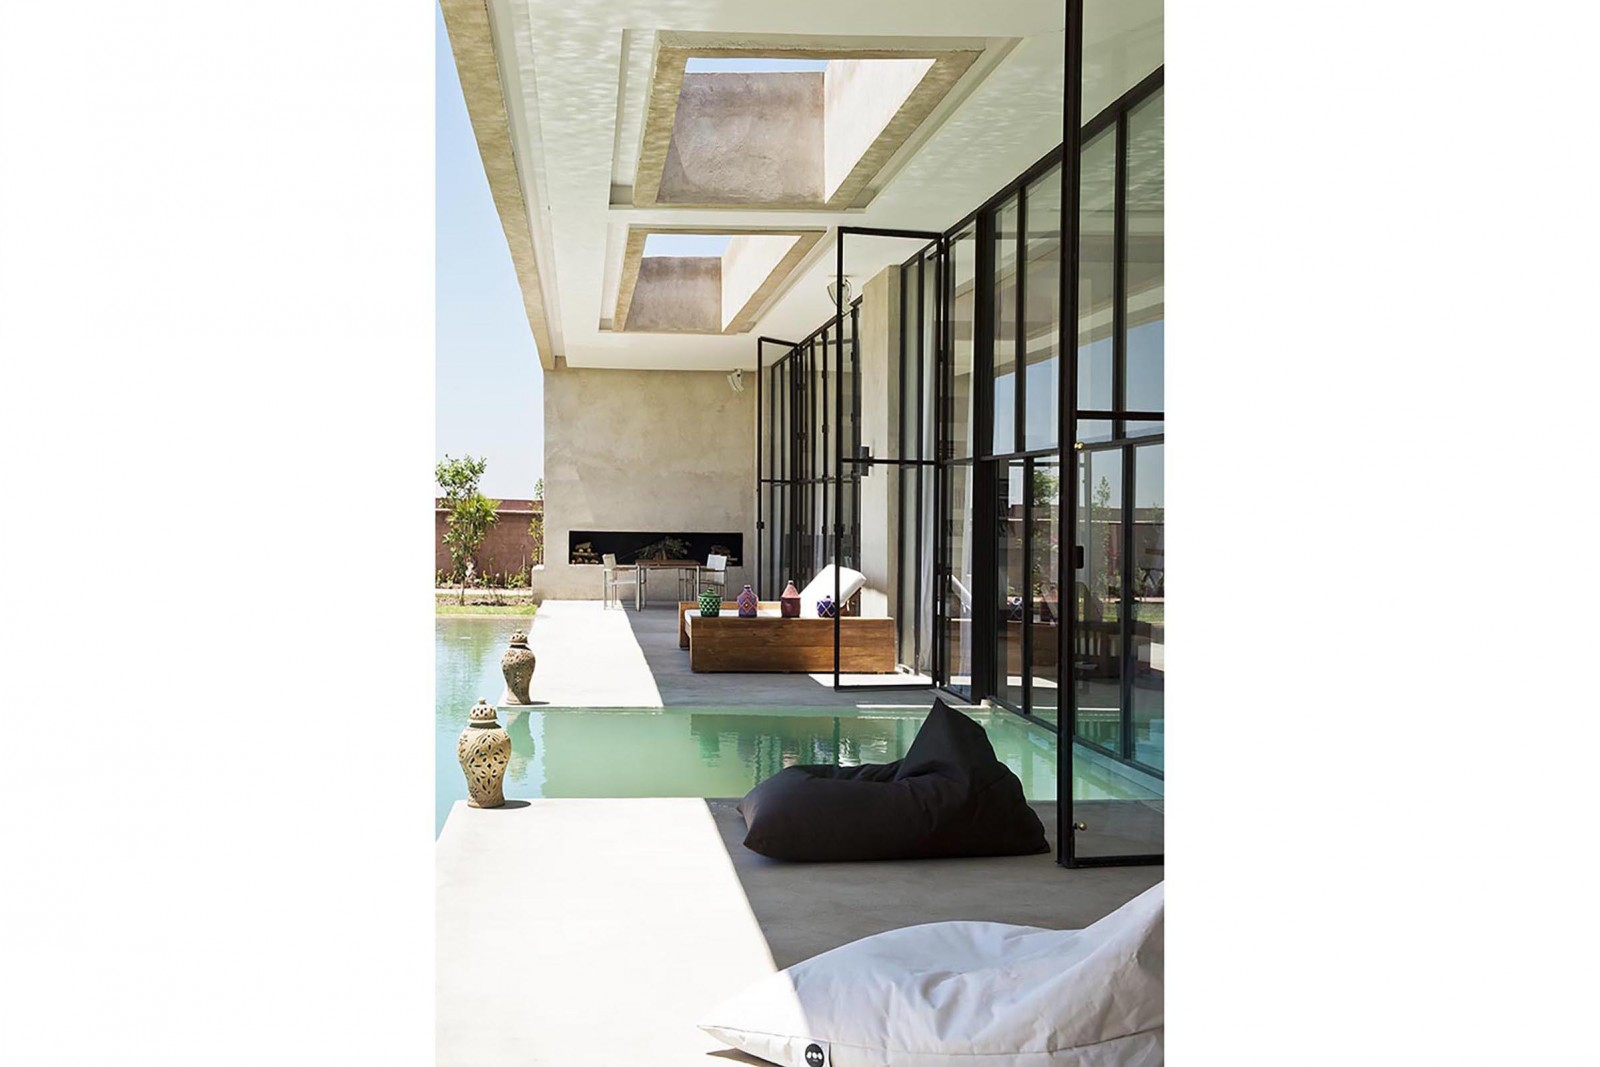 Amizmiz house marrakech morocco the modern house for Modern house holiday lets